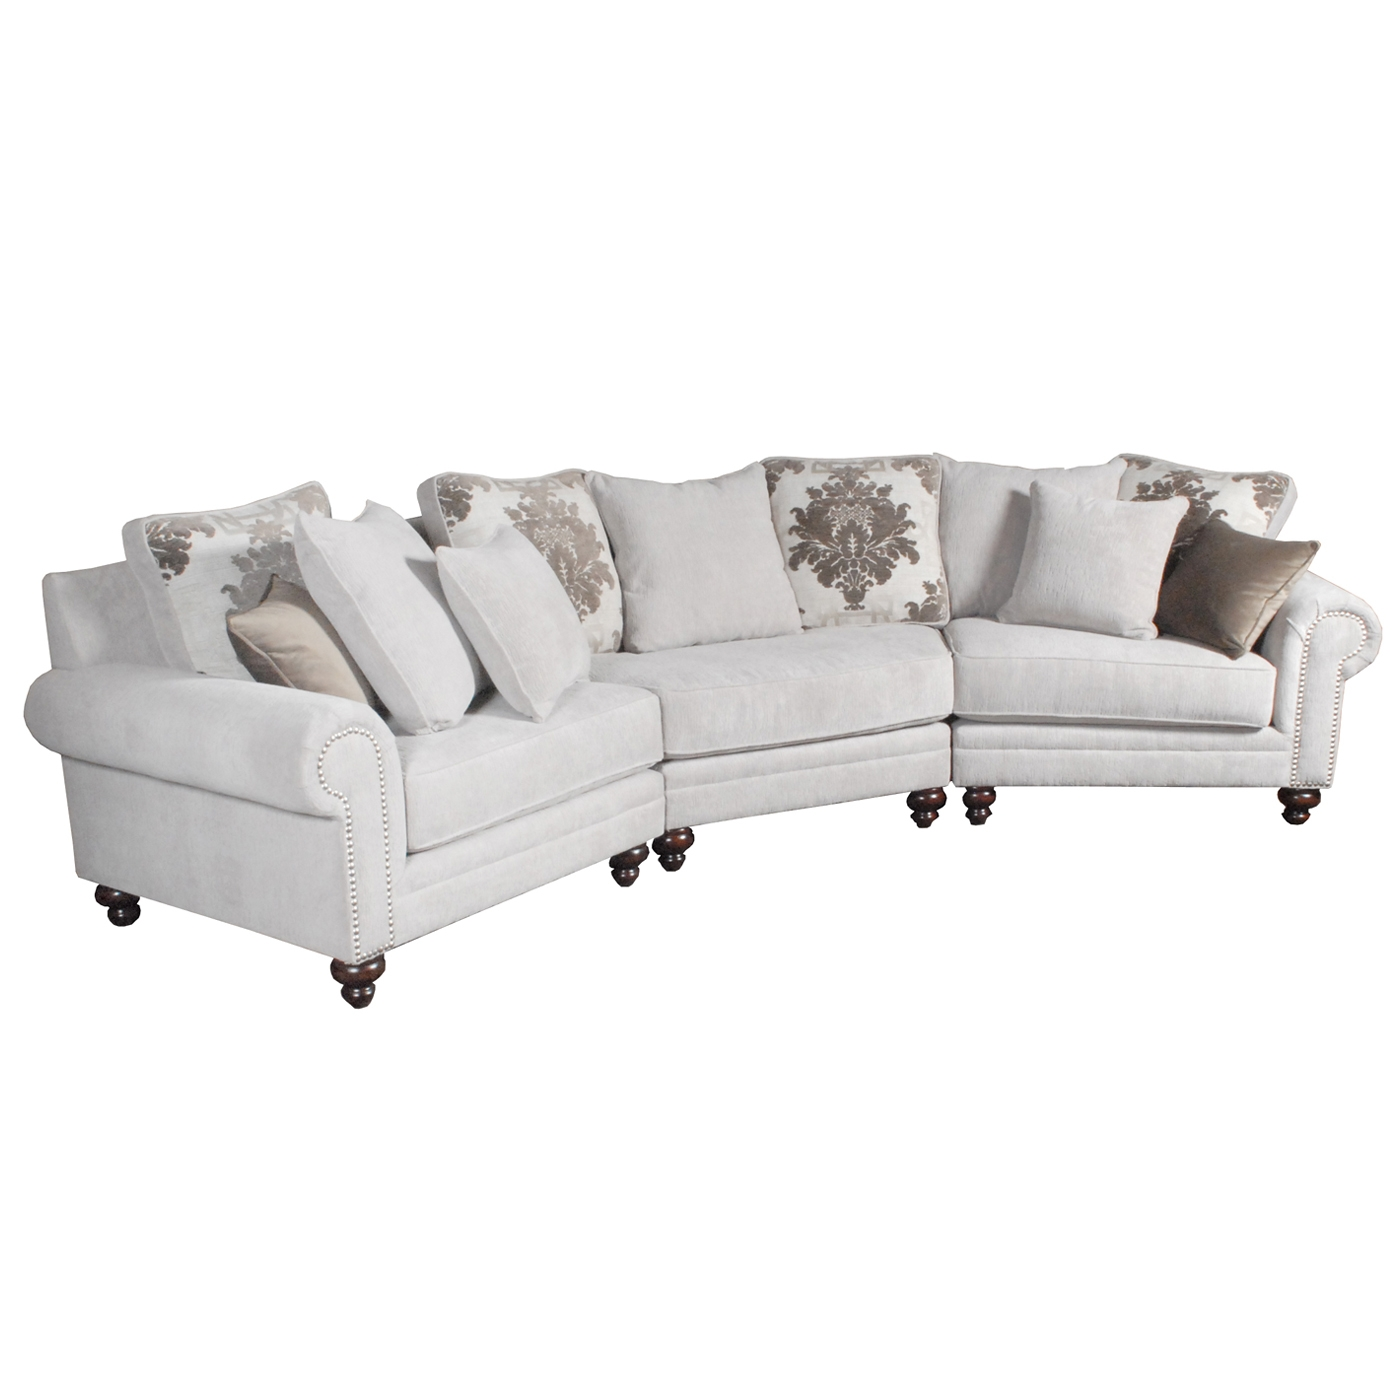 right angled sectional sofa 2 seat bed leather norwalk ord casual